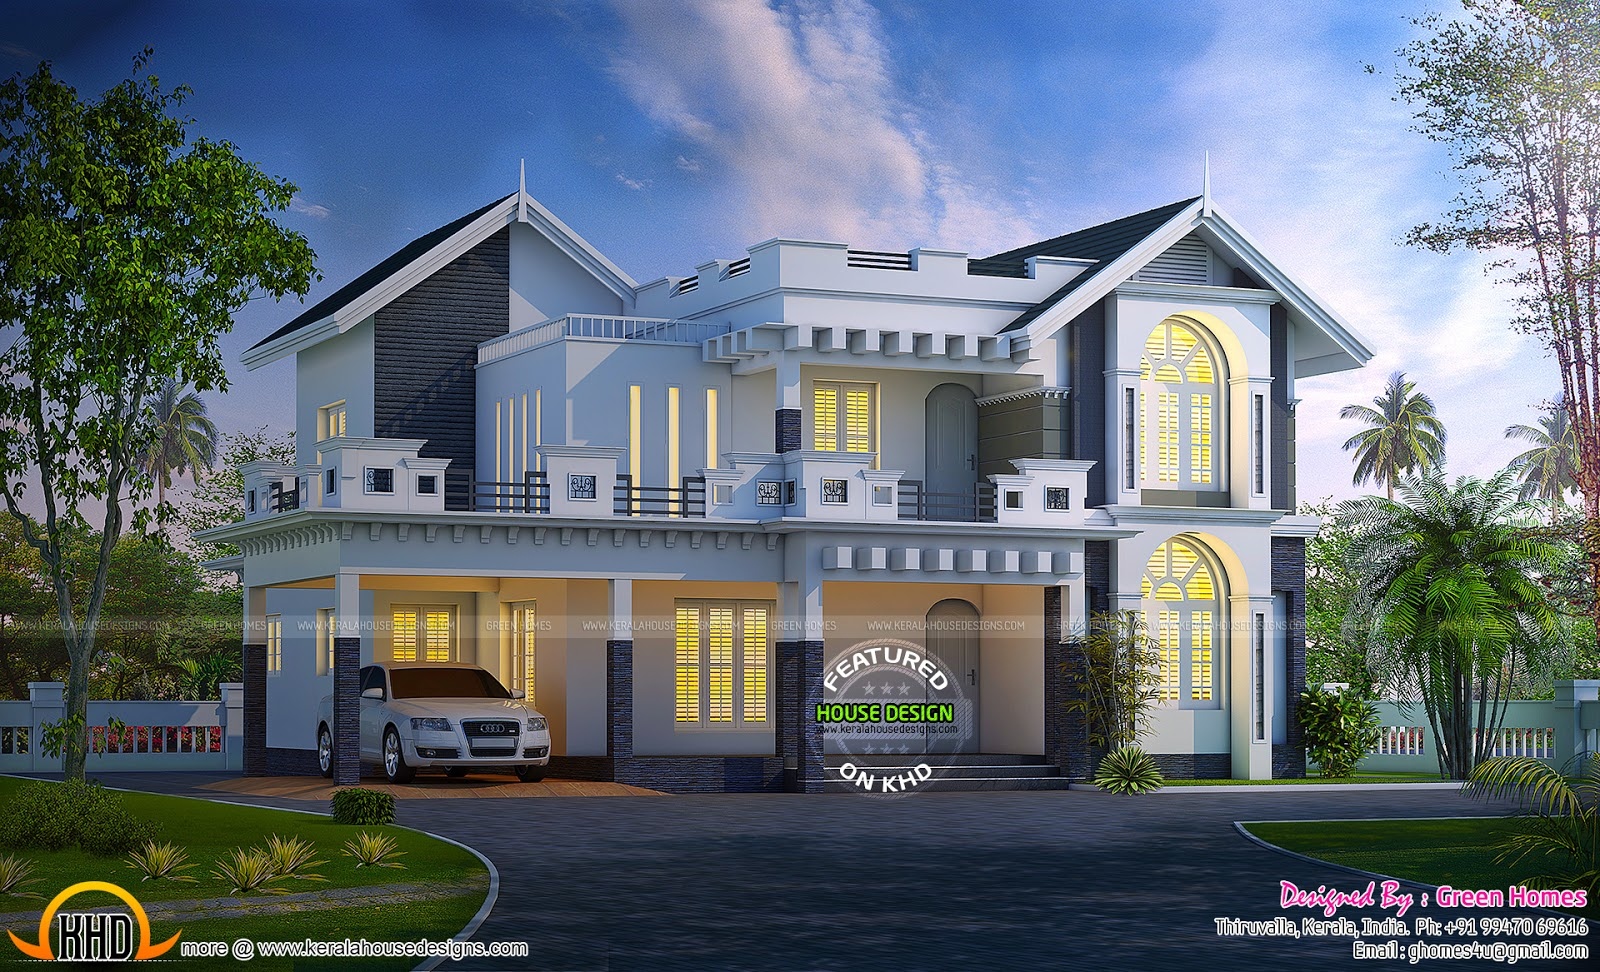 New kerala house plans for june 2015 keralahousedesigns for New model house plan